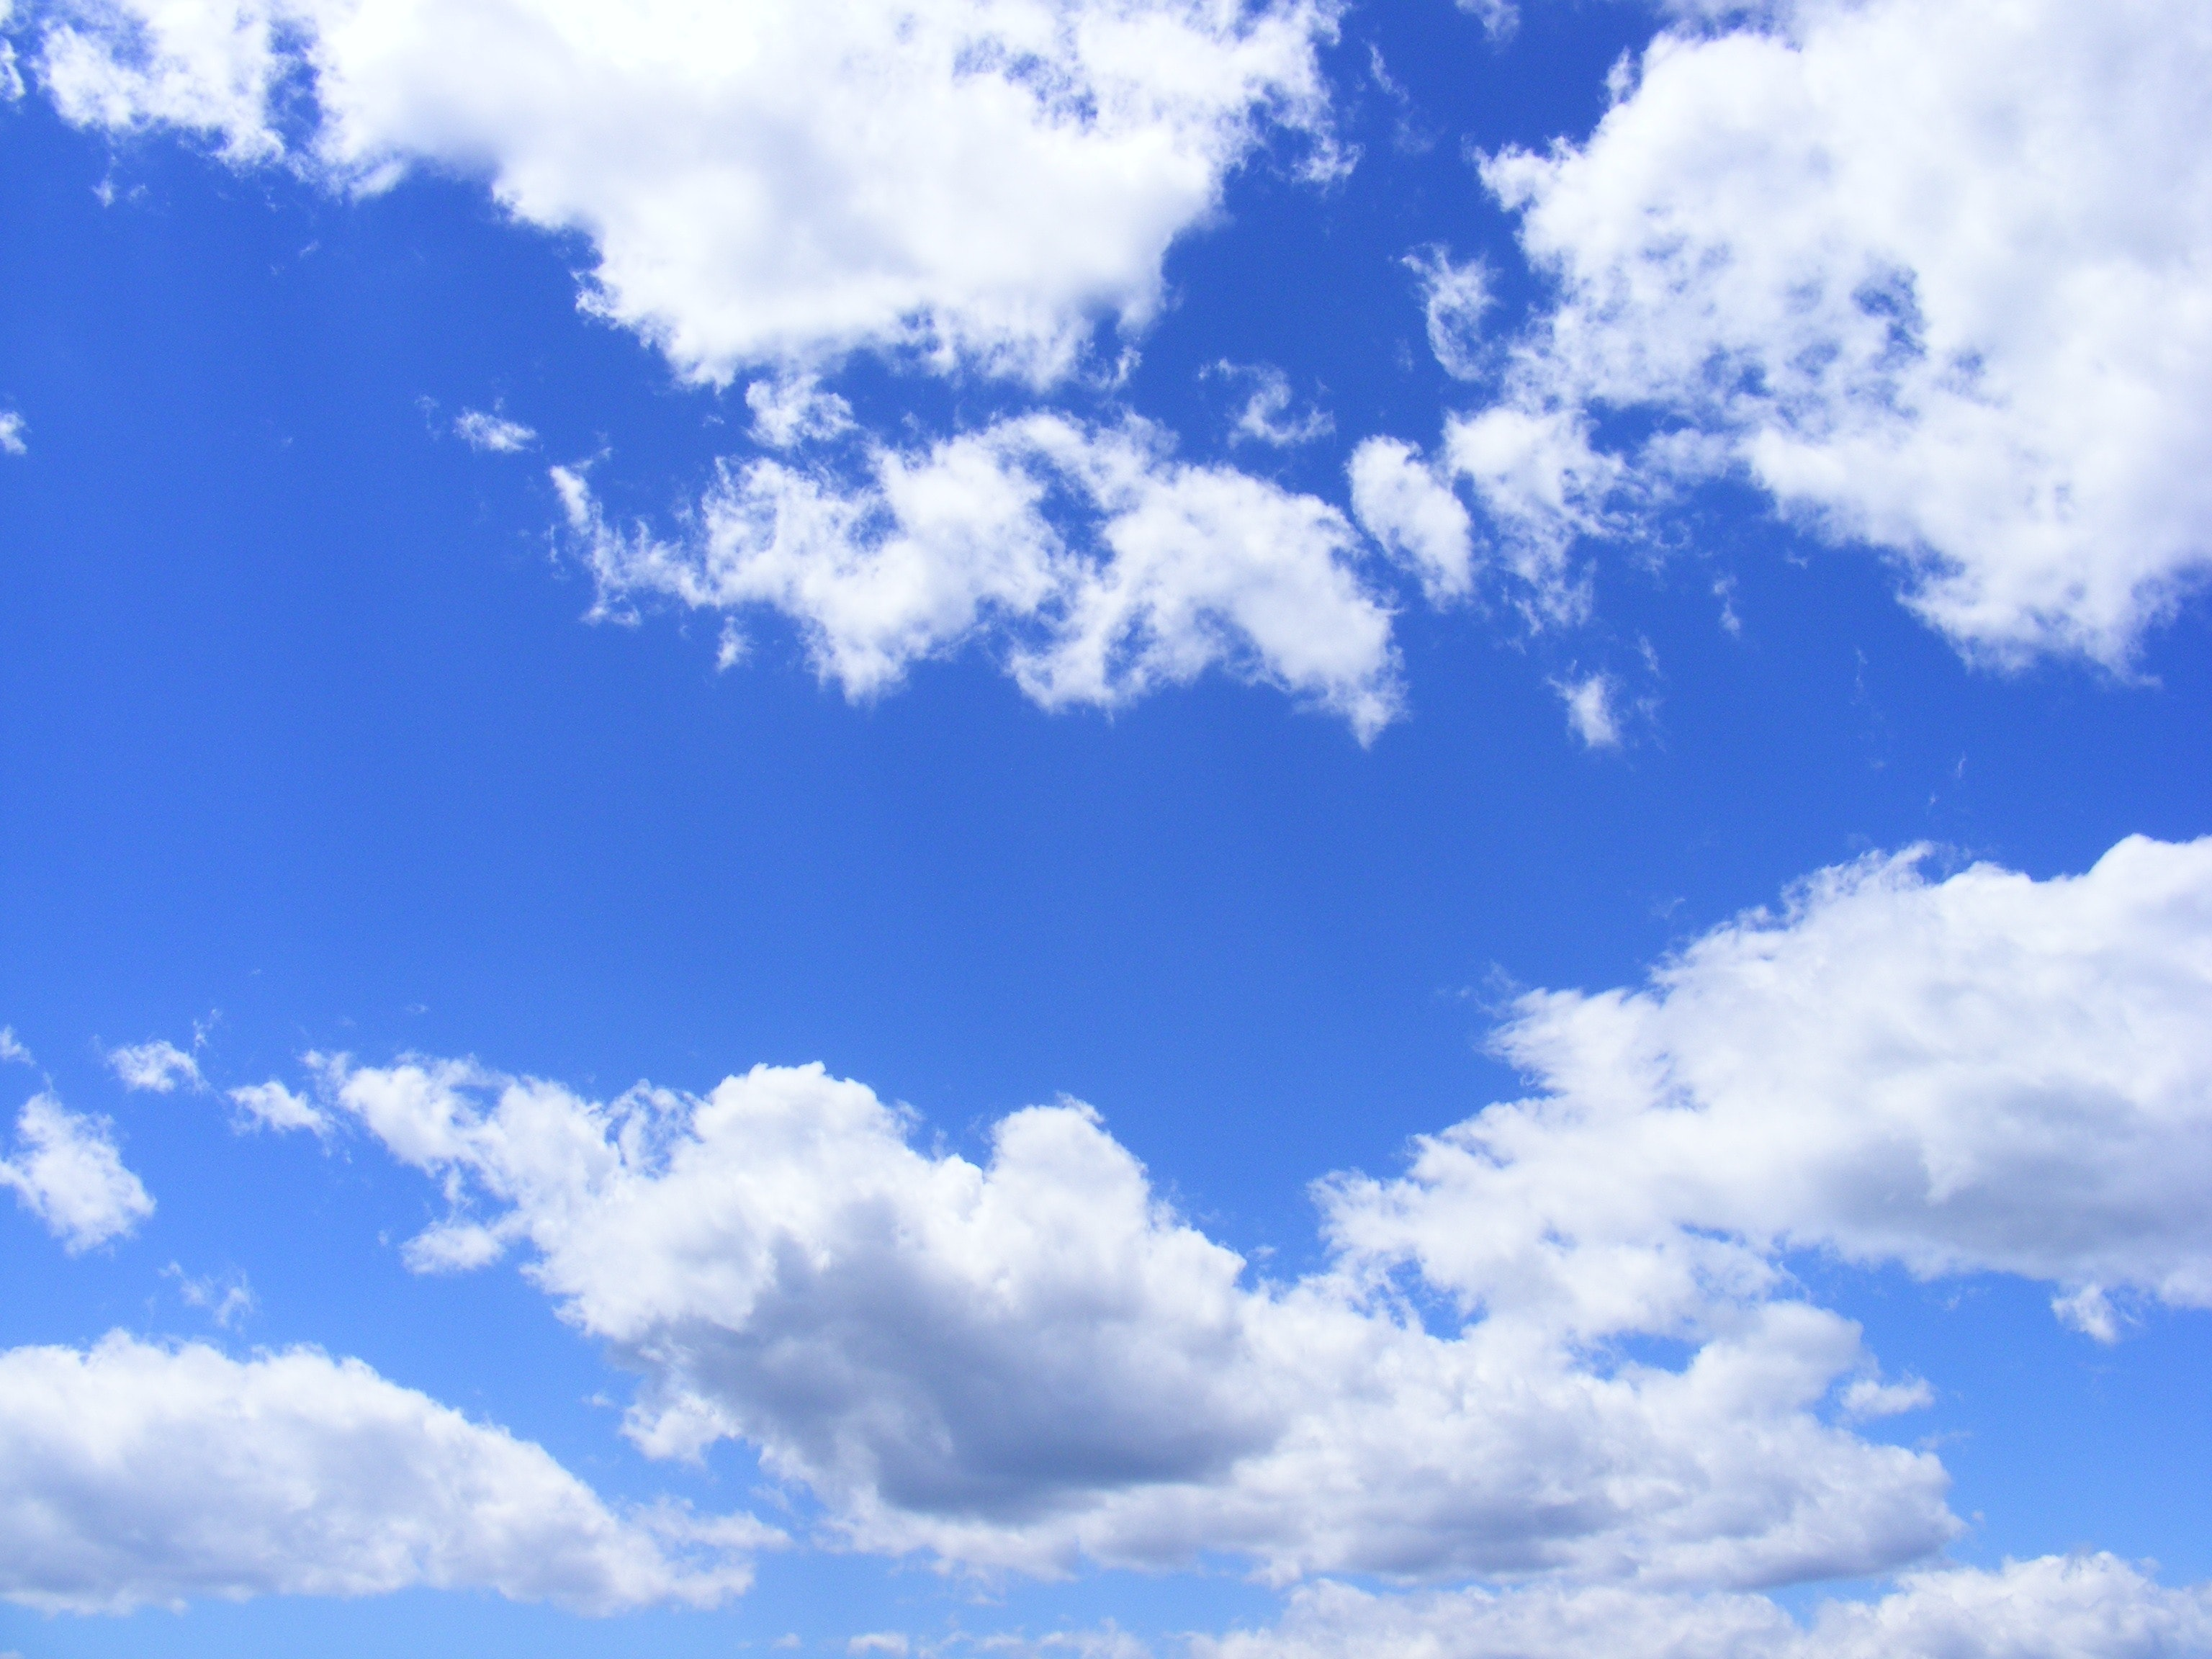 Blue Skies, Blue, Clouds, Day, Nature, HQ Photo